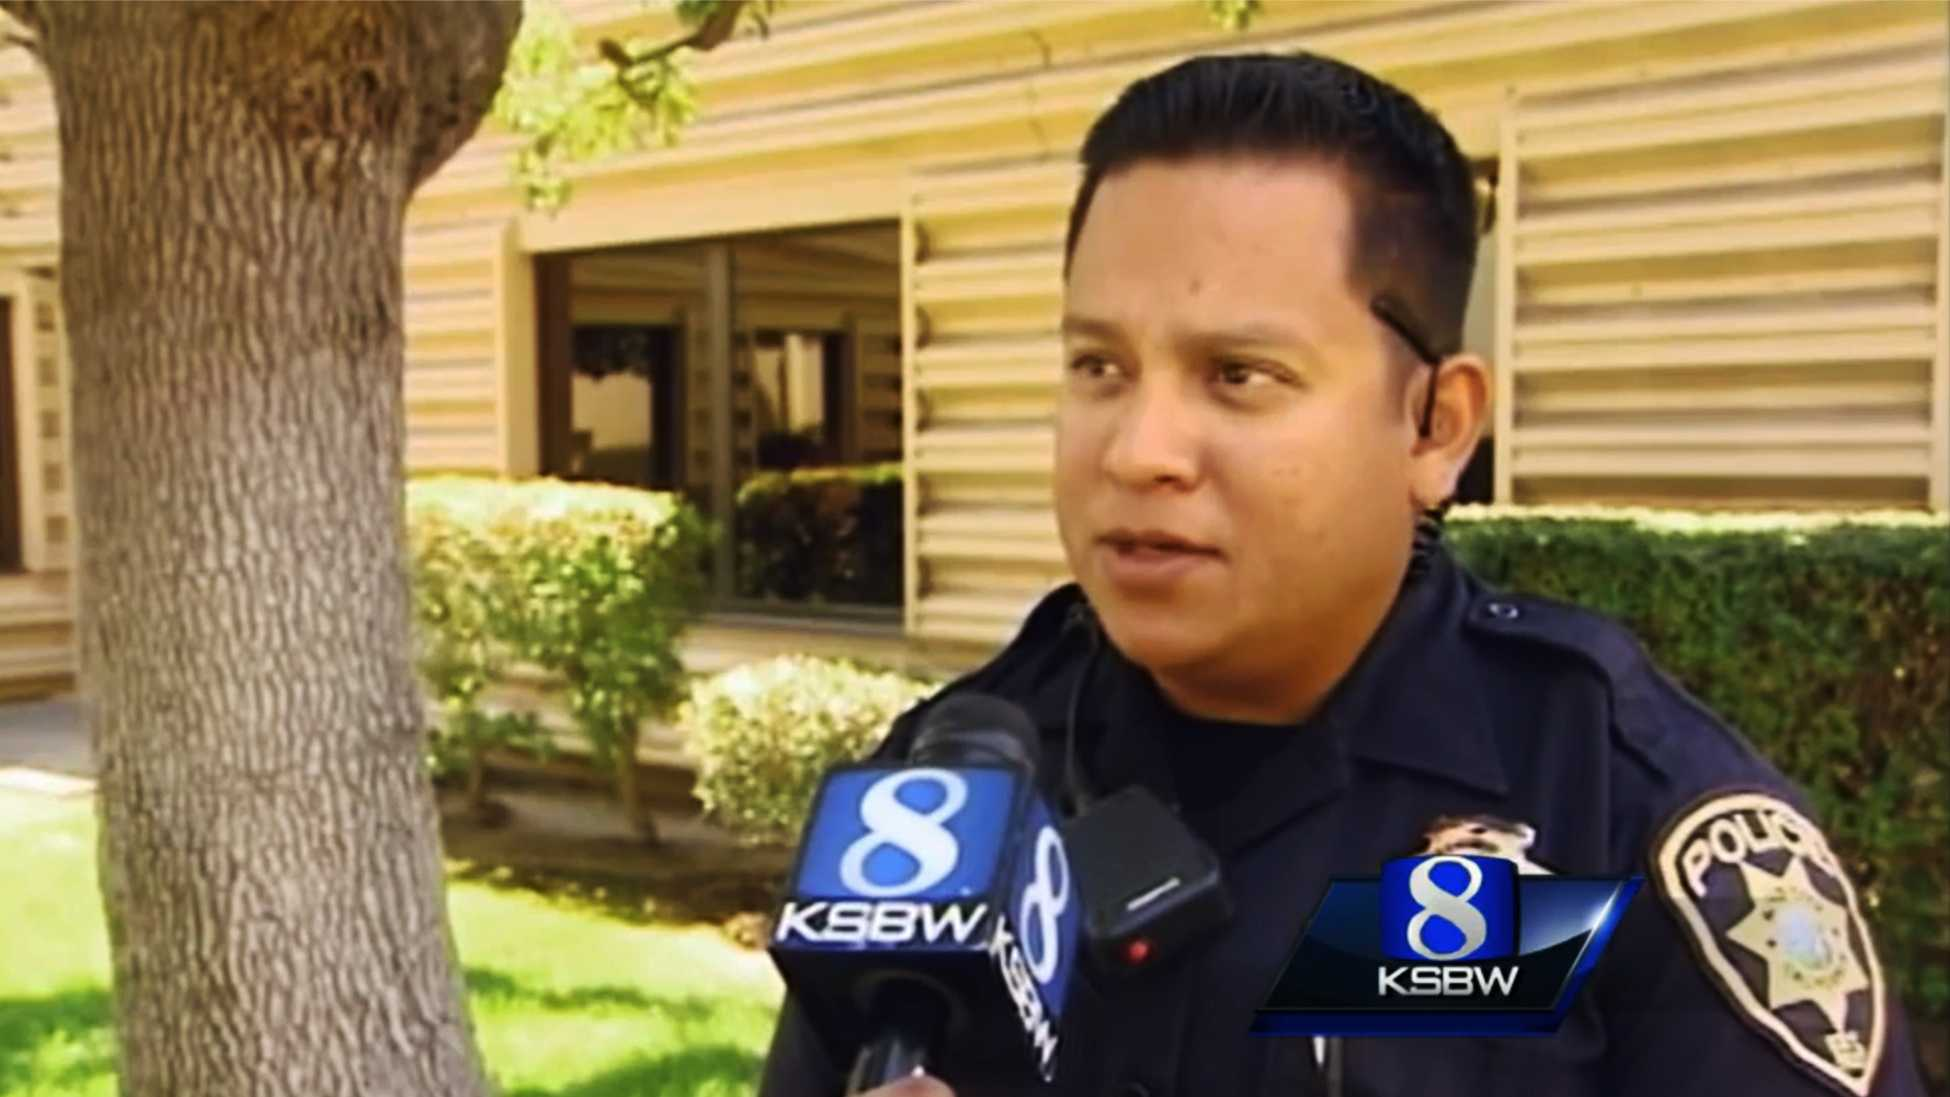 KSBW interviewed King City police officer David Hernandez in August.